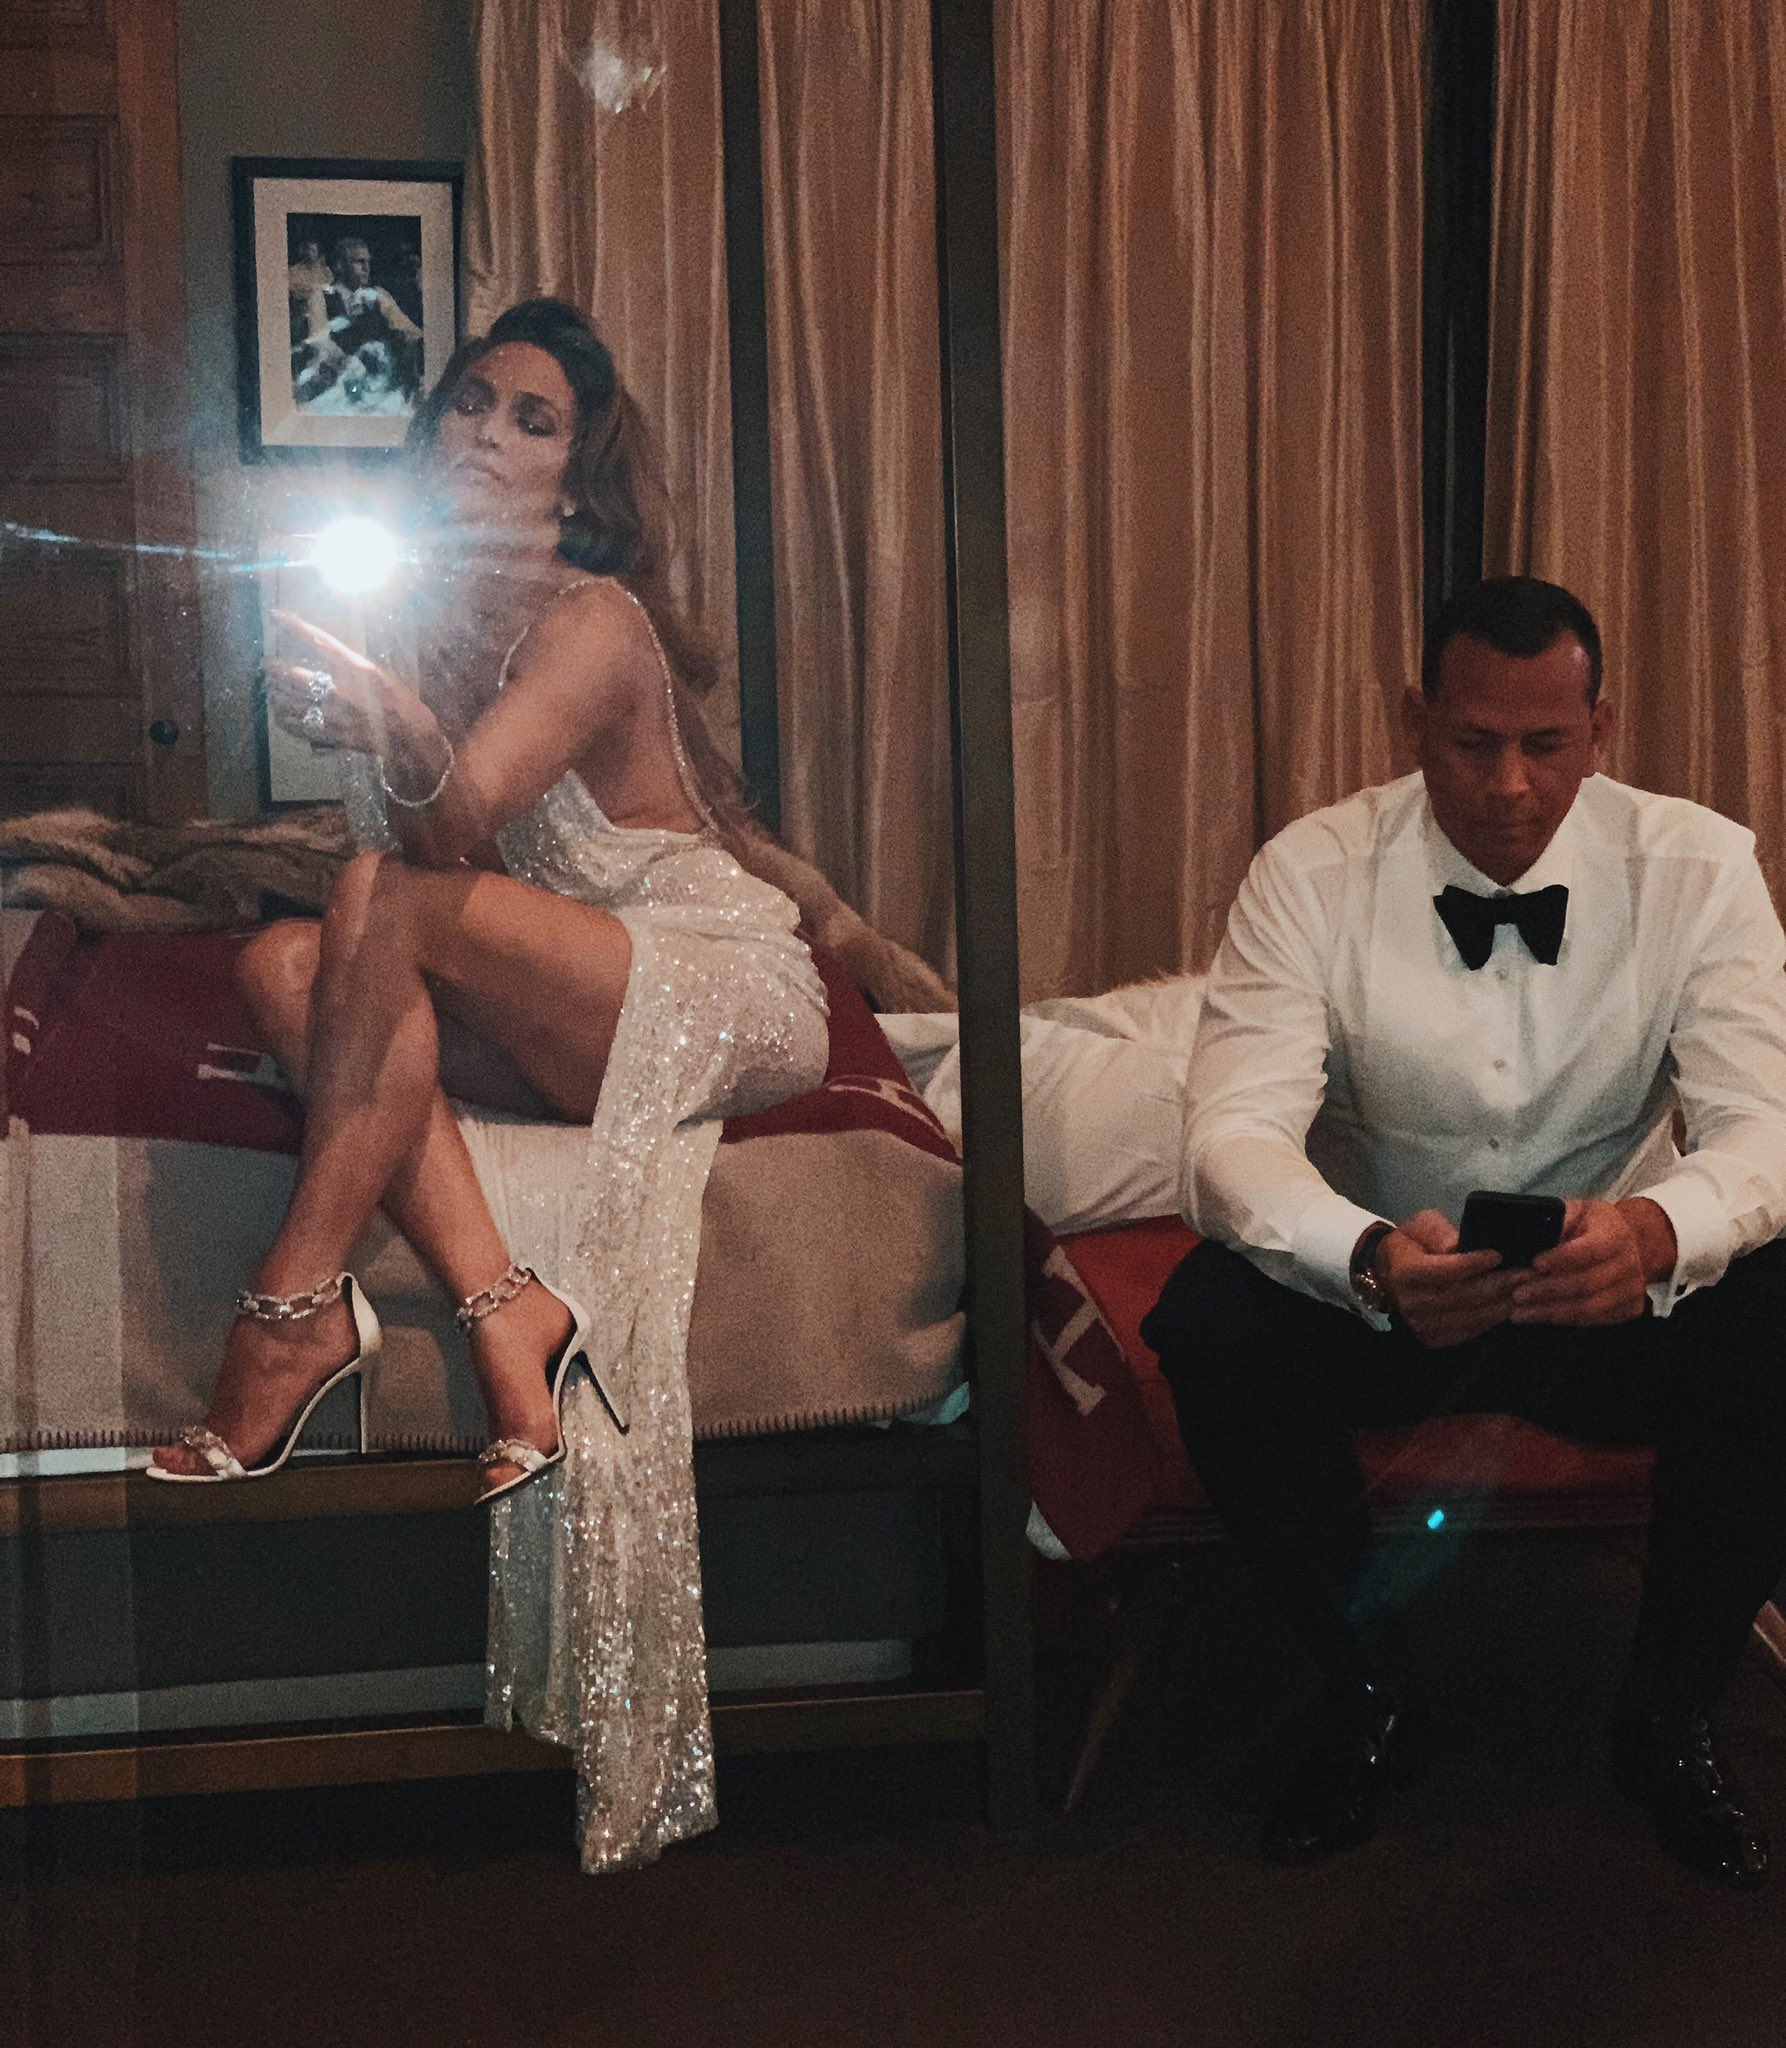 At the end of the night, it's just us. �� #Grammys2019 @AROD https://t.co/Zjwjq96aDx